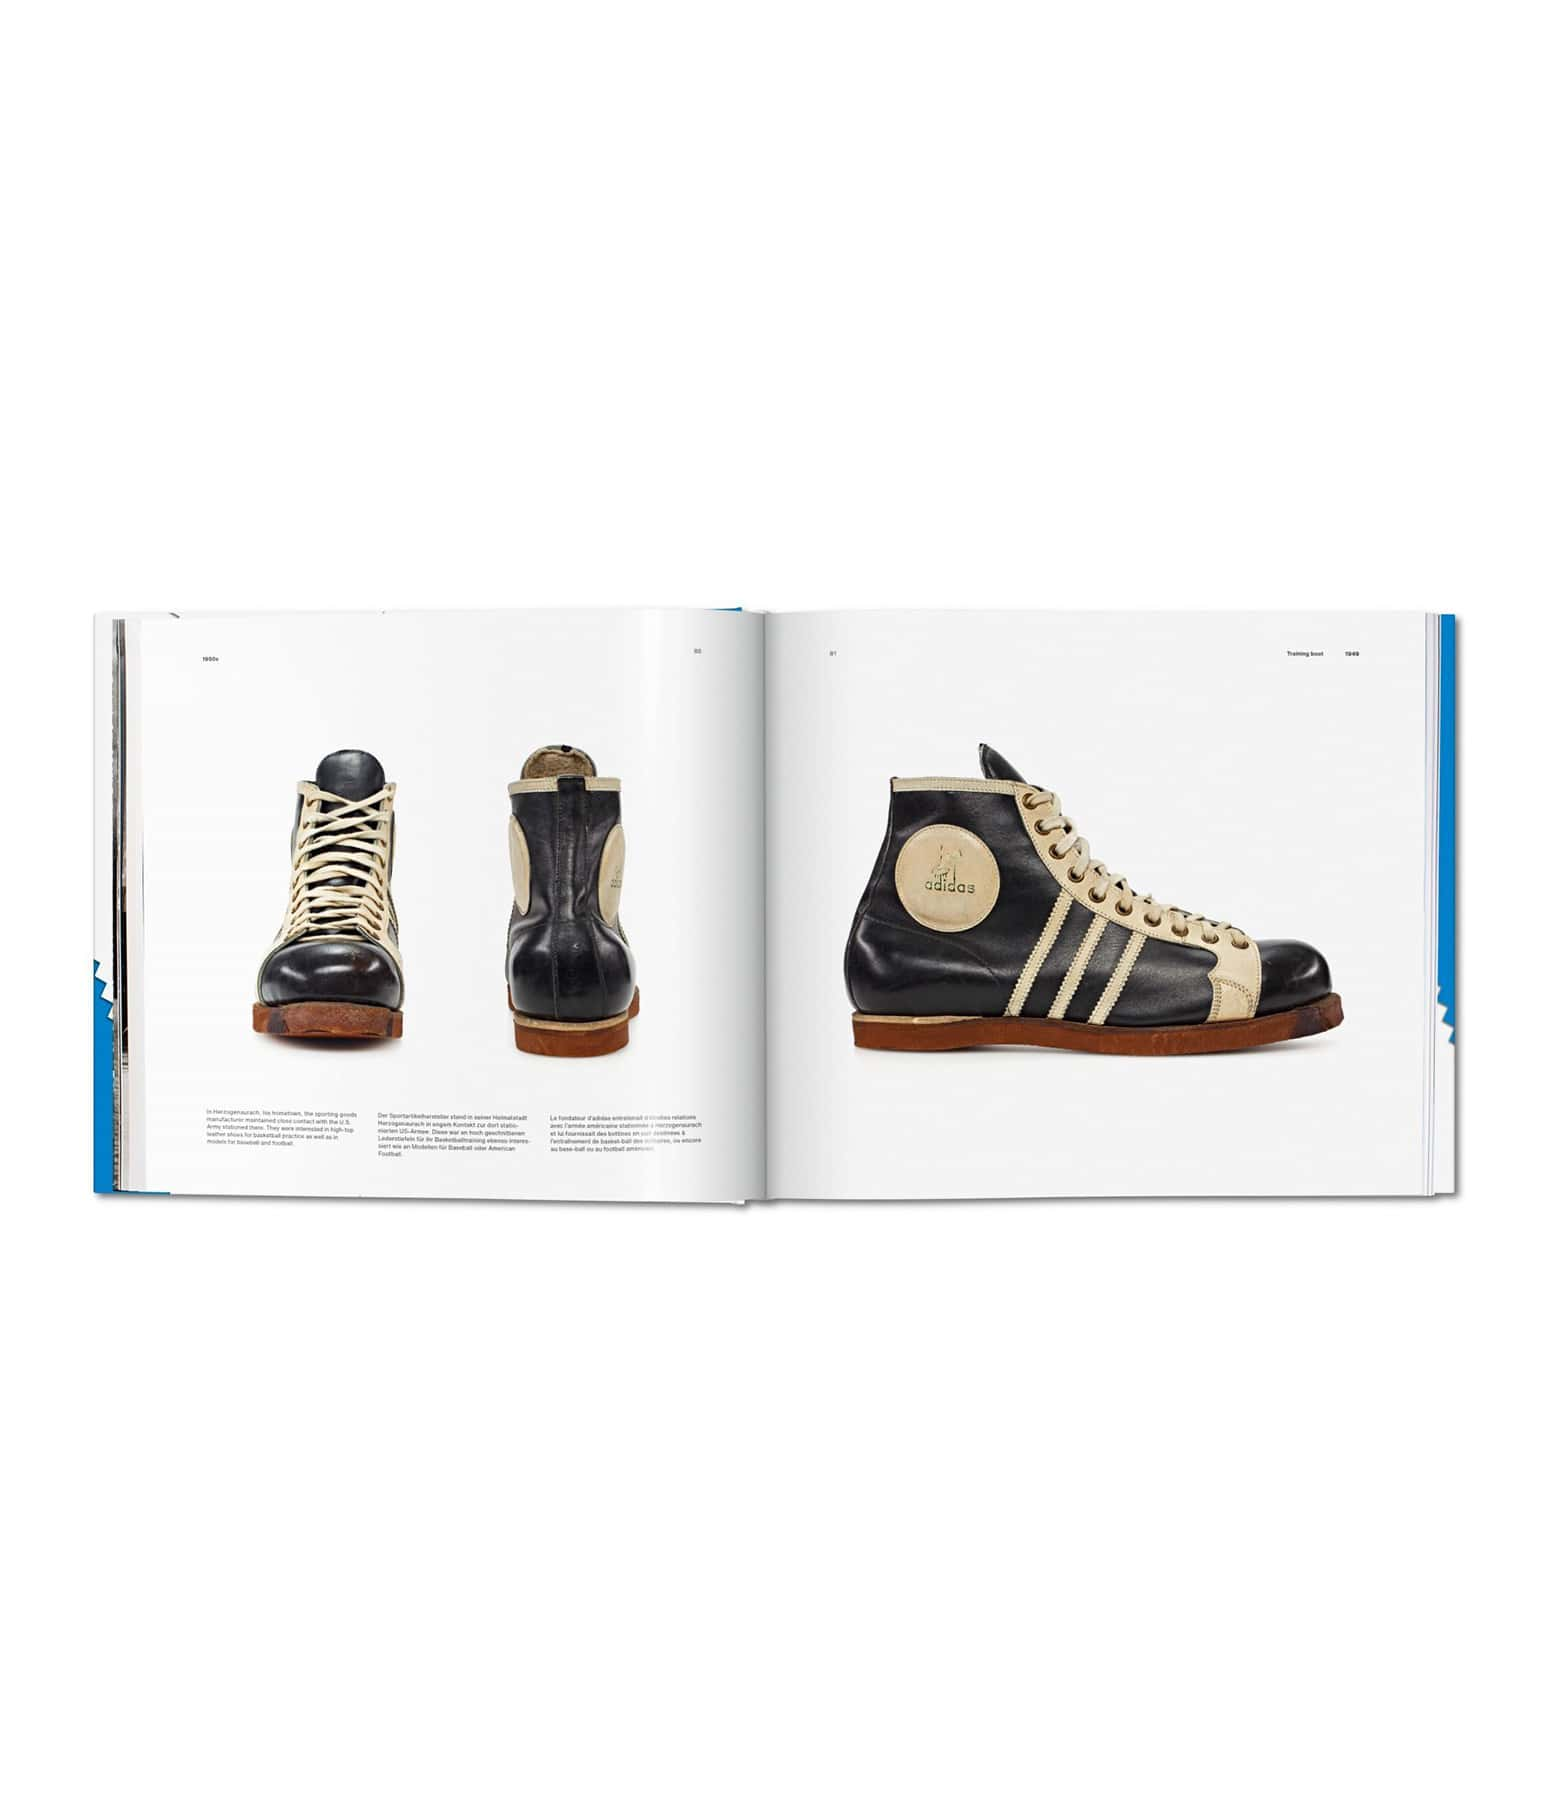 TASCHEN - Livre XL The Adidas Archive,The Footwear Collection